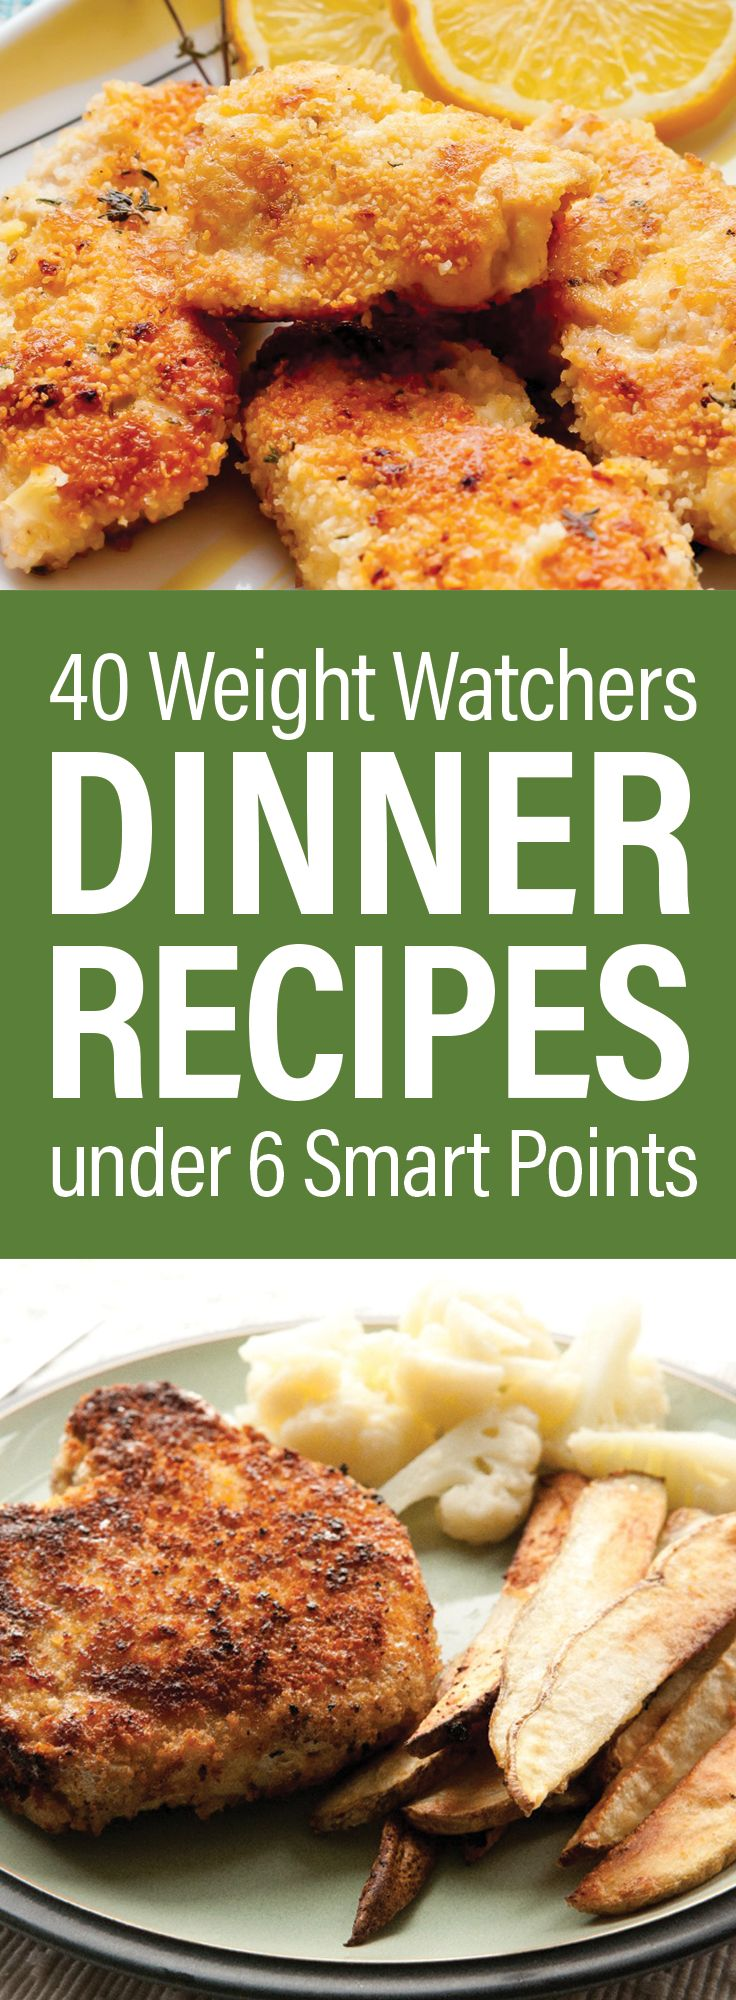 40 Weight Watchers Dinner Recipes Under 6 SmartPoints including Lemon and Herb Shrimp, Baked Shrimp, Egg Drop Soup, Cheese Souffle, Pork Chops, Pork Tenderloin, Chili, Chicken Fried Rice, Mexican Chicken Breasts, Eggplant Casserole, Salmon, Turkey Meatballs, Fried Fish, and more!  #weightwatchers #ww #smartpoints #healthyrecipes #recipes #recipe #kitchme #weightwatcher #healthy #healthyrecipes #weightwatchersrecipes #weightwatchersdinner